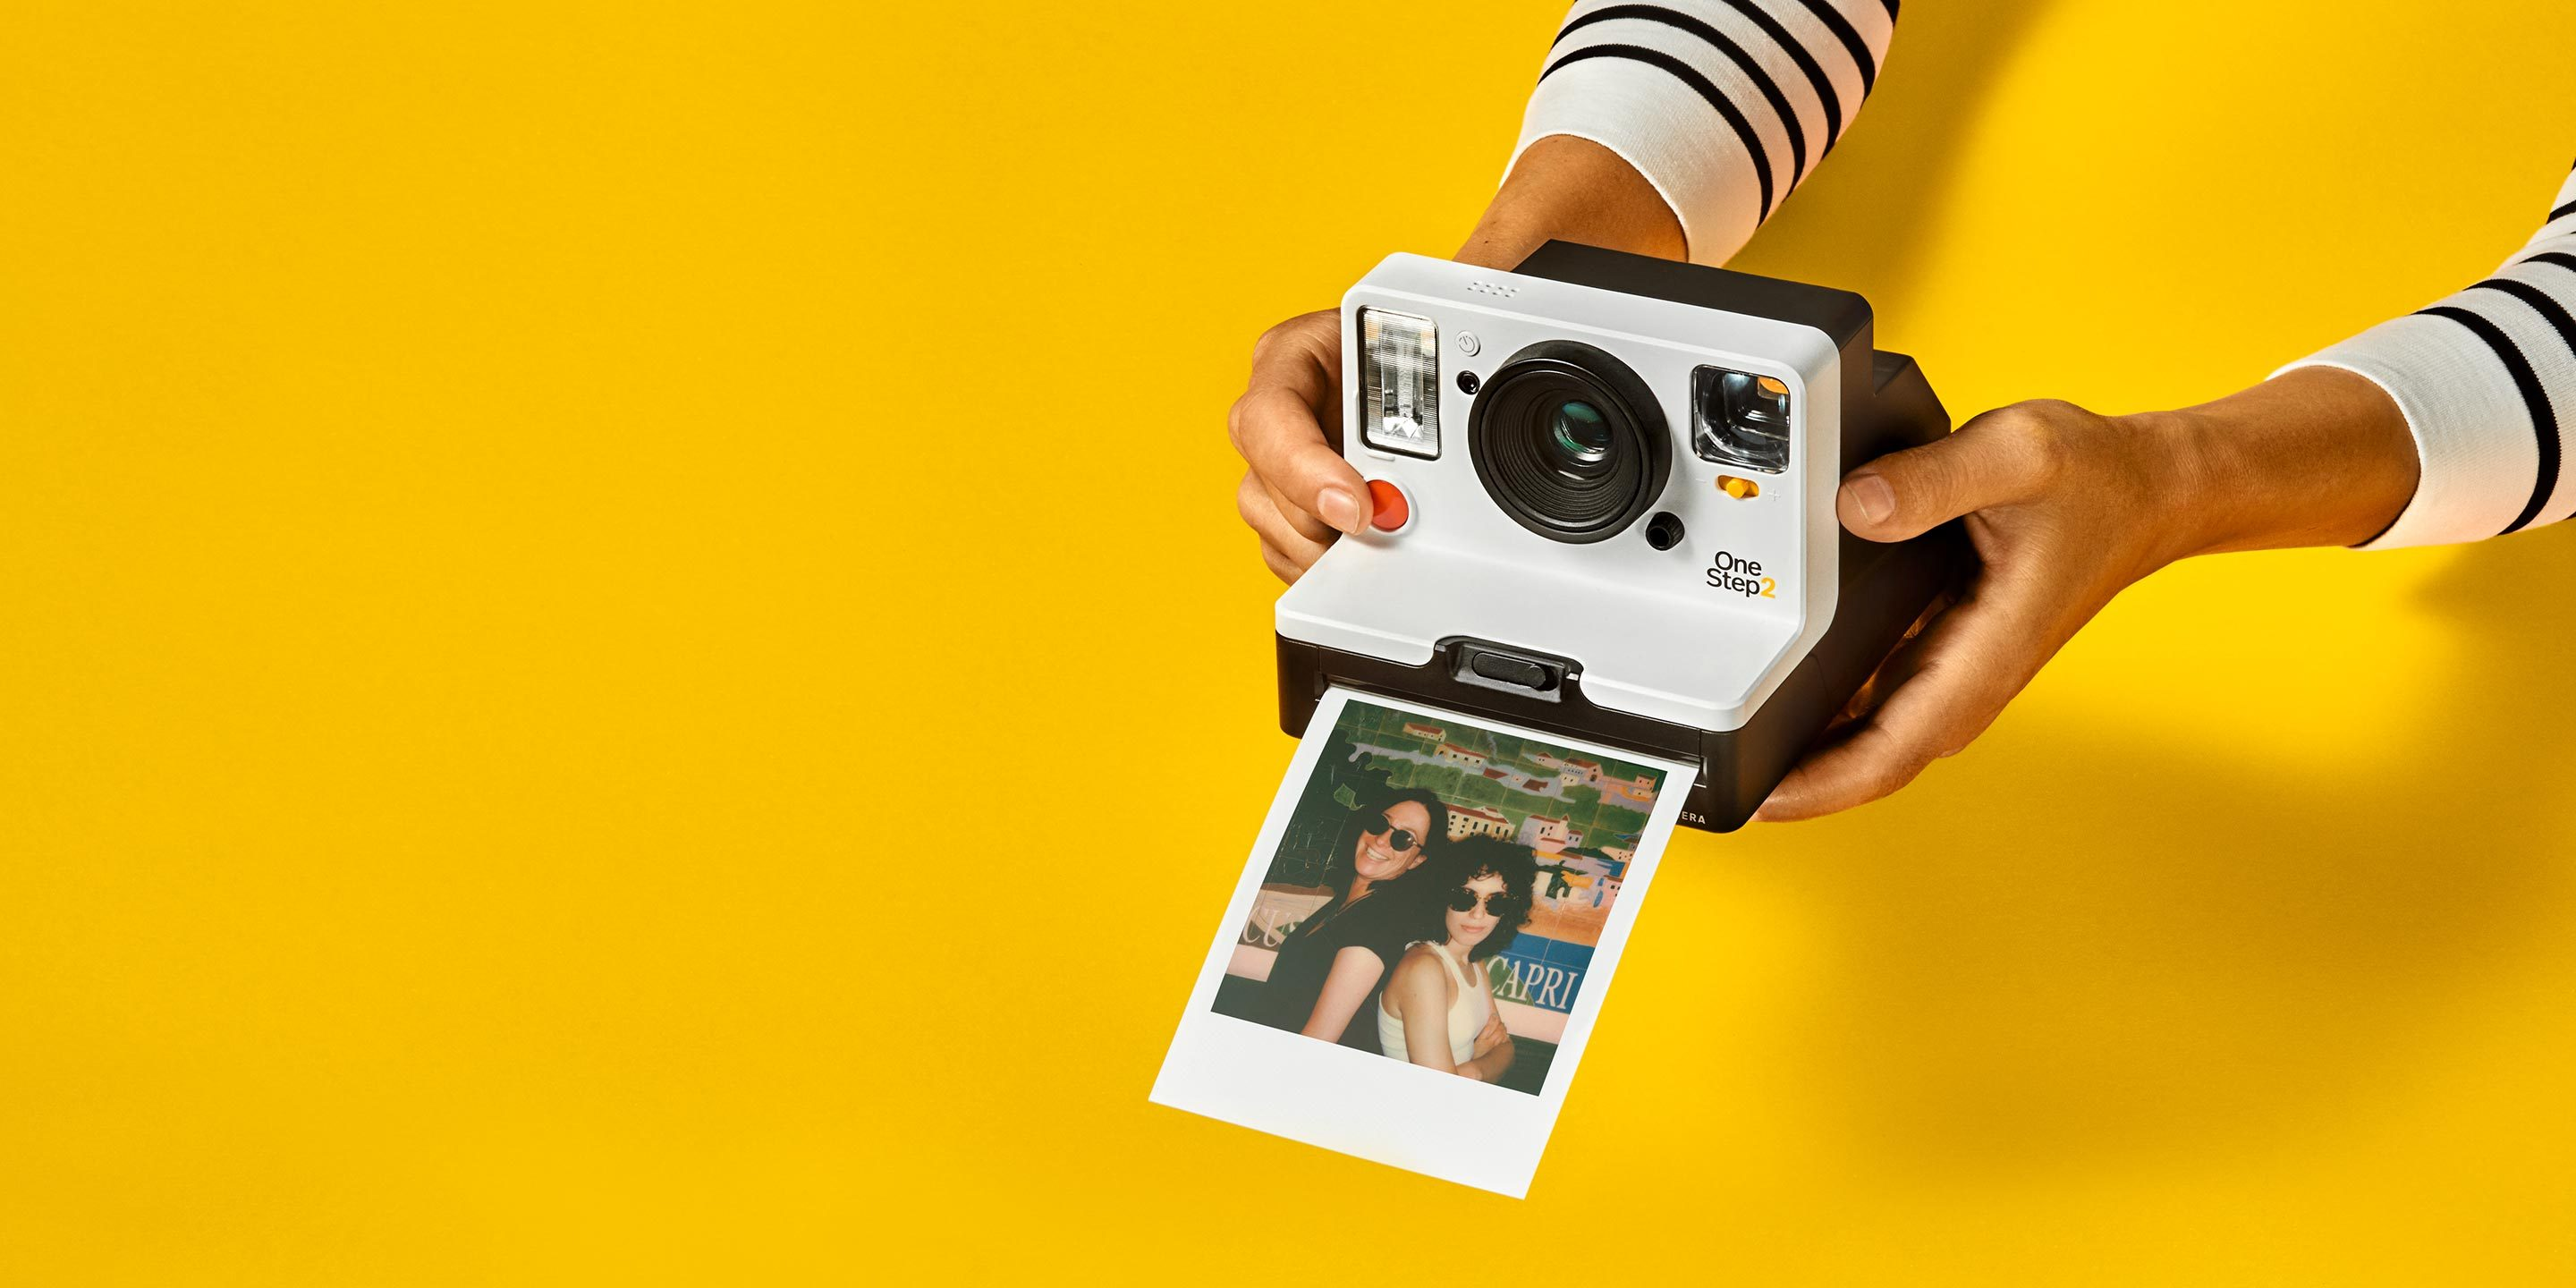 Polaroid One Stop (Source: dpreview.com)